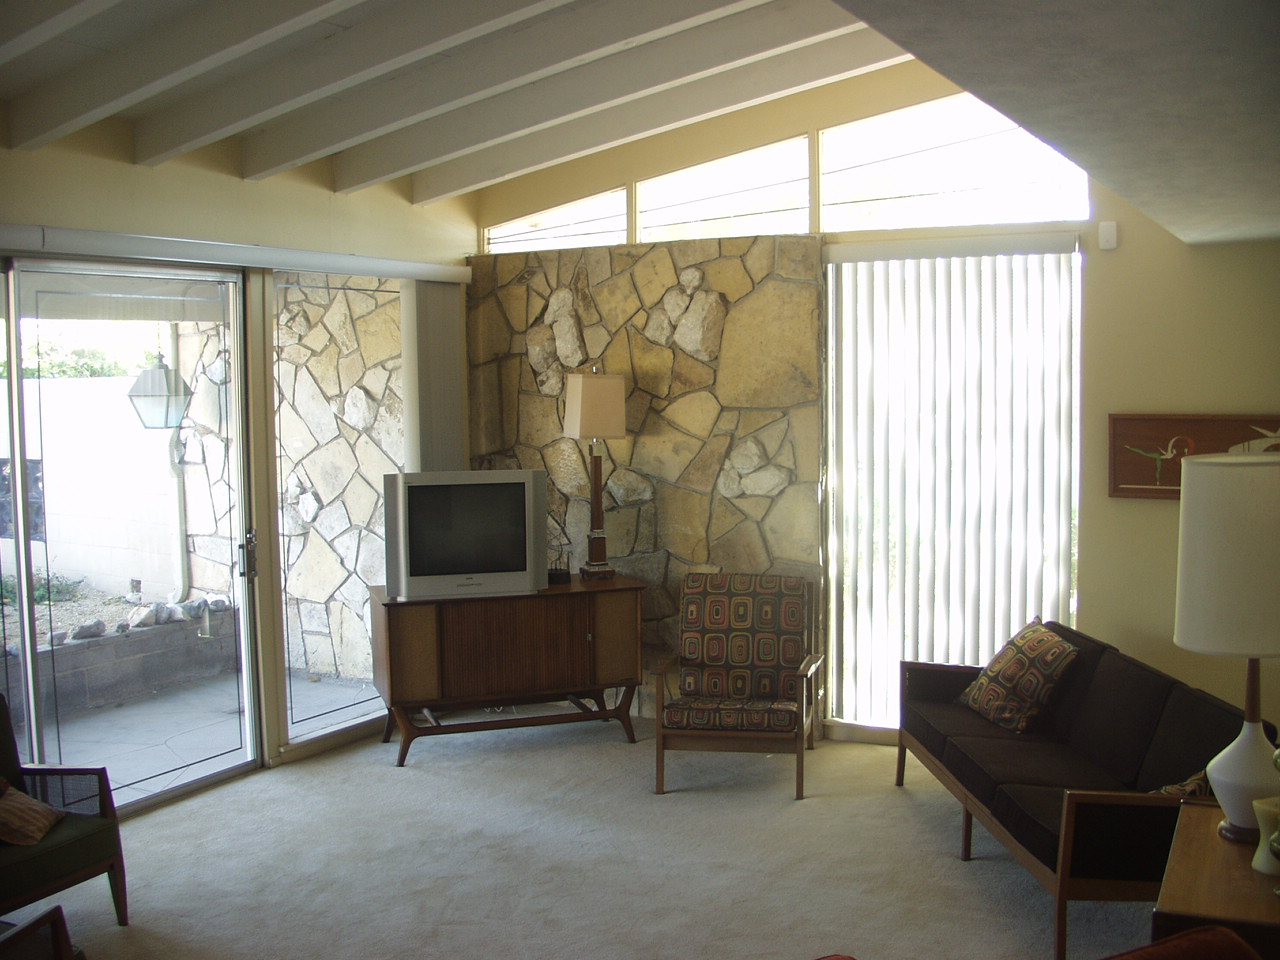 William Miller Design: Things I Love About Modernism Week ...